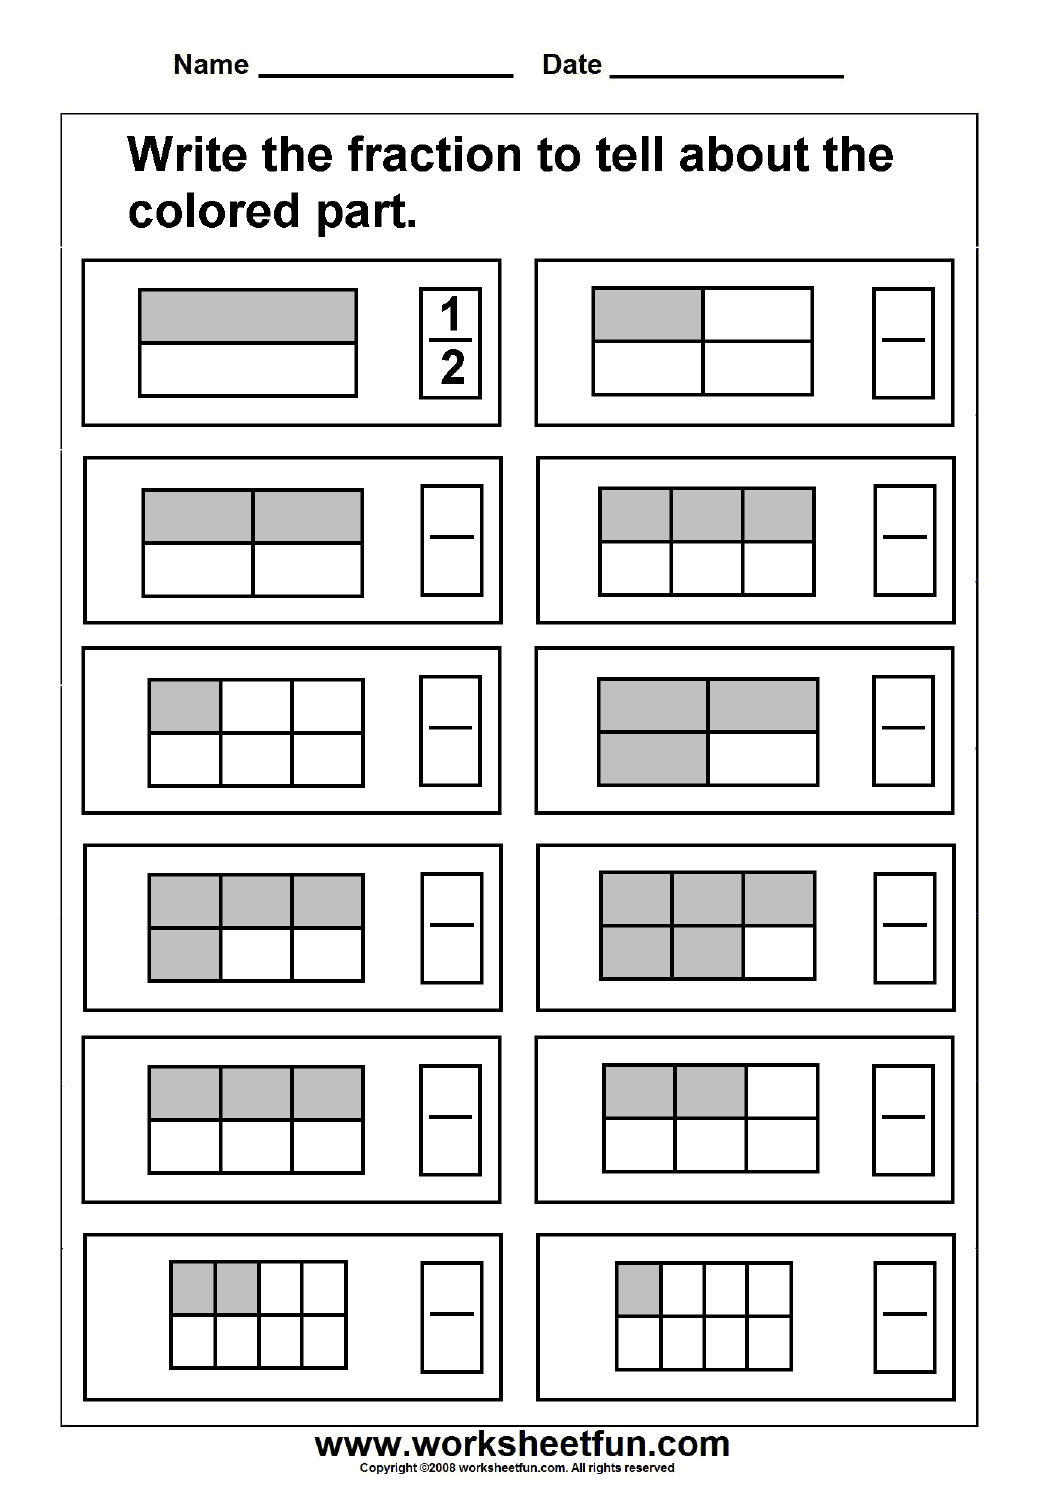 Fraction FREE Printable Worksheets Worksheetfun – Worksheet on Fractions for Grade 3